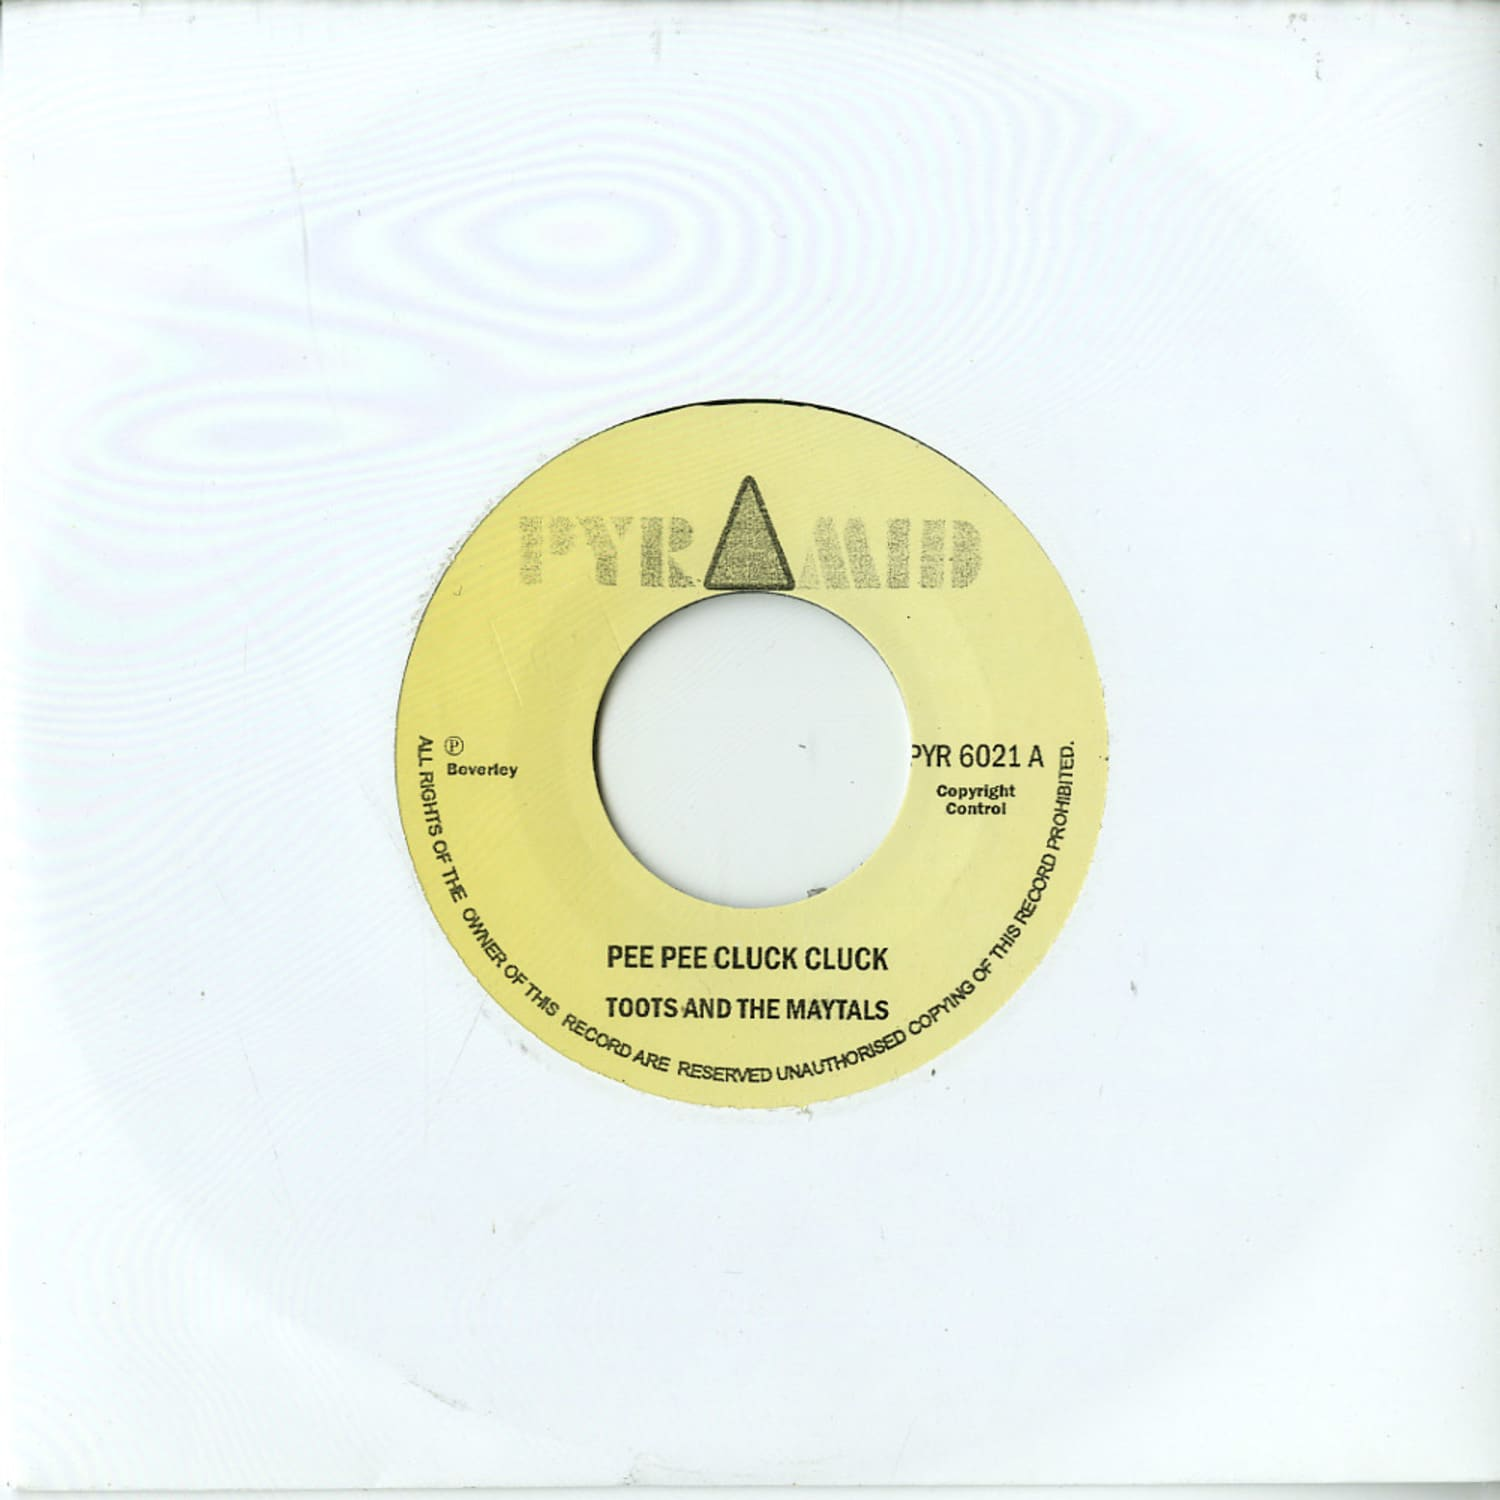 Toots & The Maytals / Beverleys All Stars - PEE PEE CLUCK CLUCK / THE MONSTER